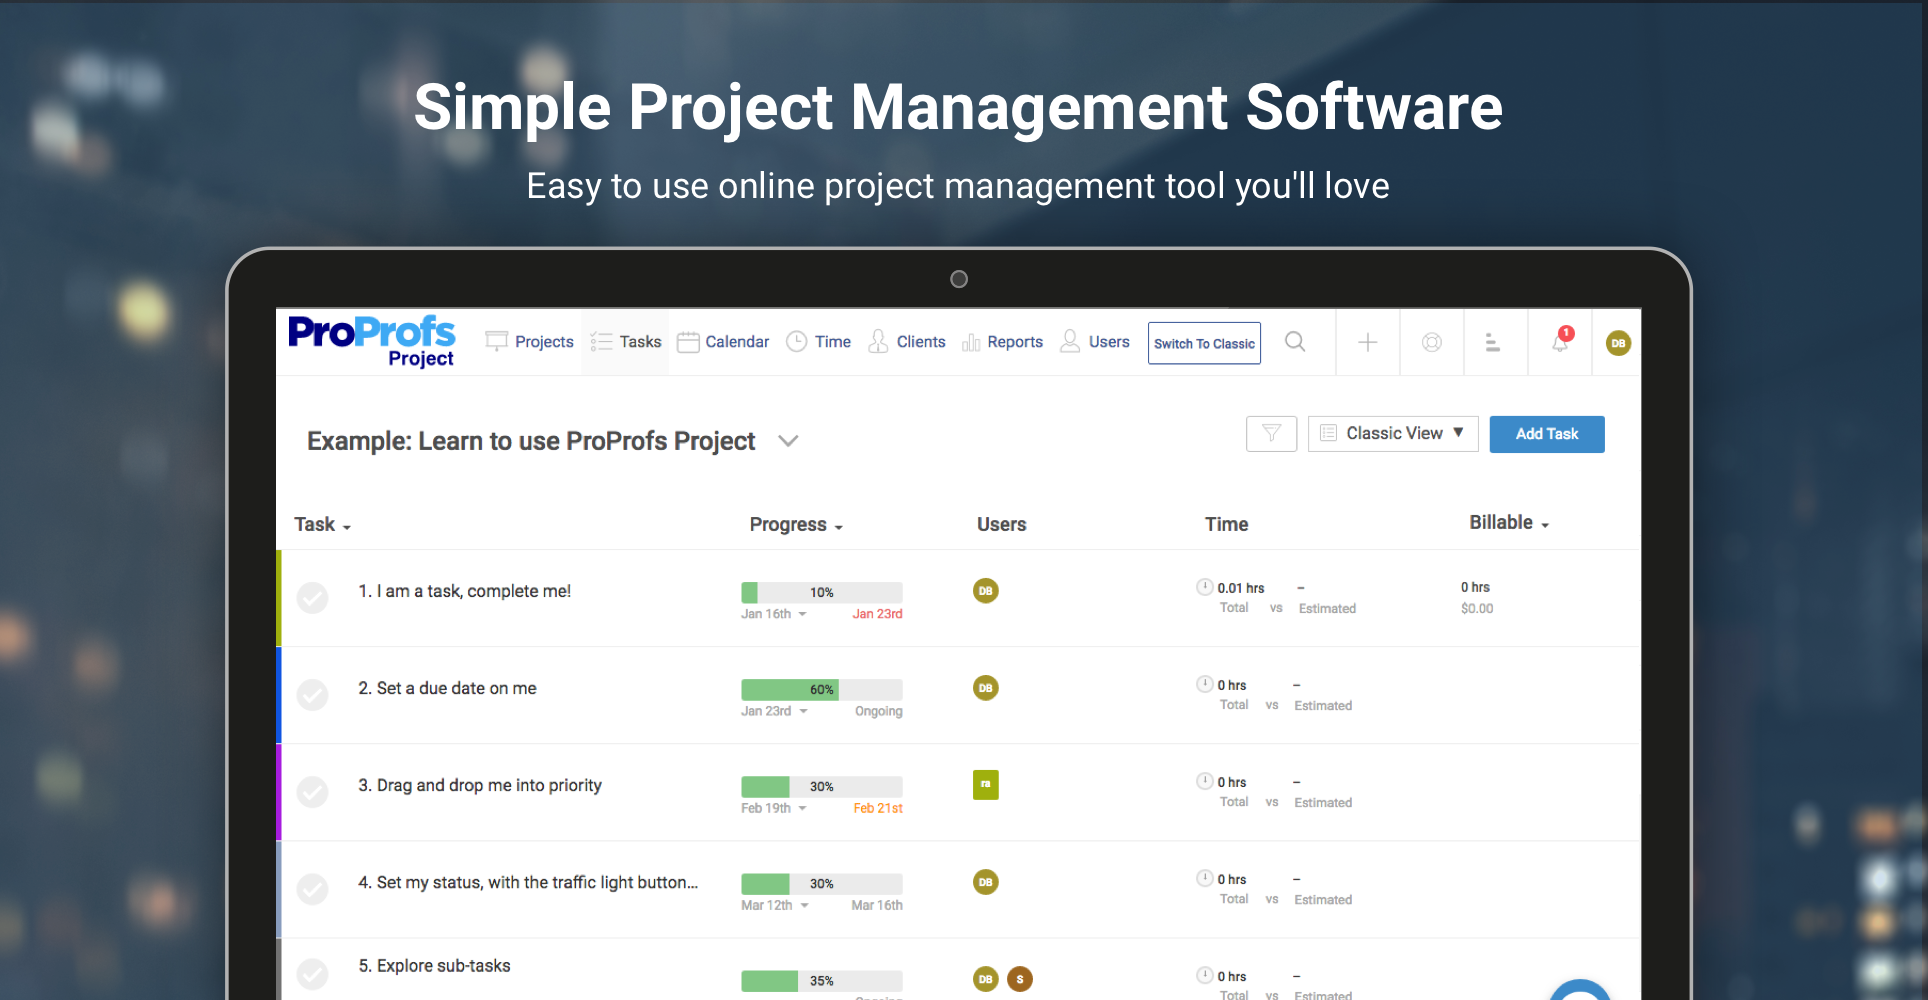 These days, having a cloud-based project management tool is very crucial, as that's the key